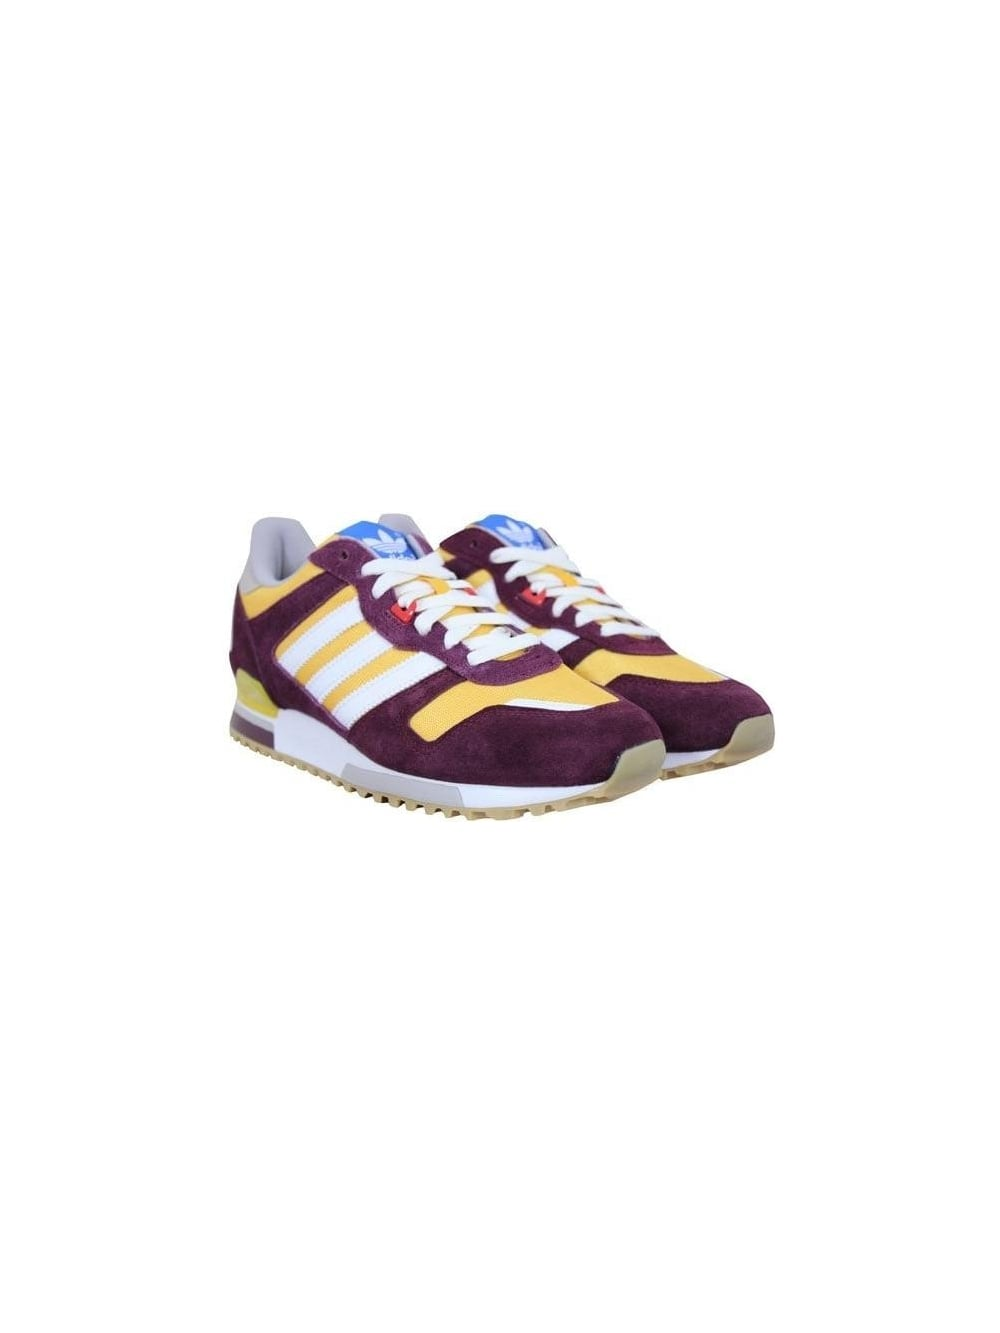 the best attitude 07416 609e0 ZX 700 Trainers - Yellow/Maroon